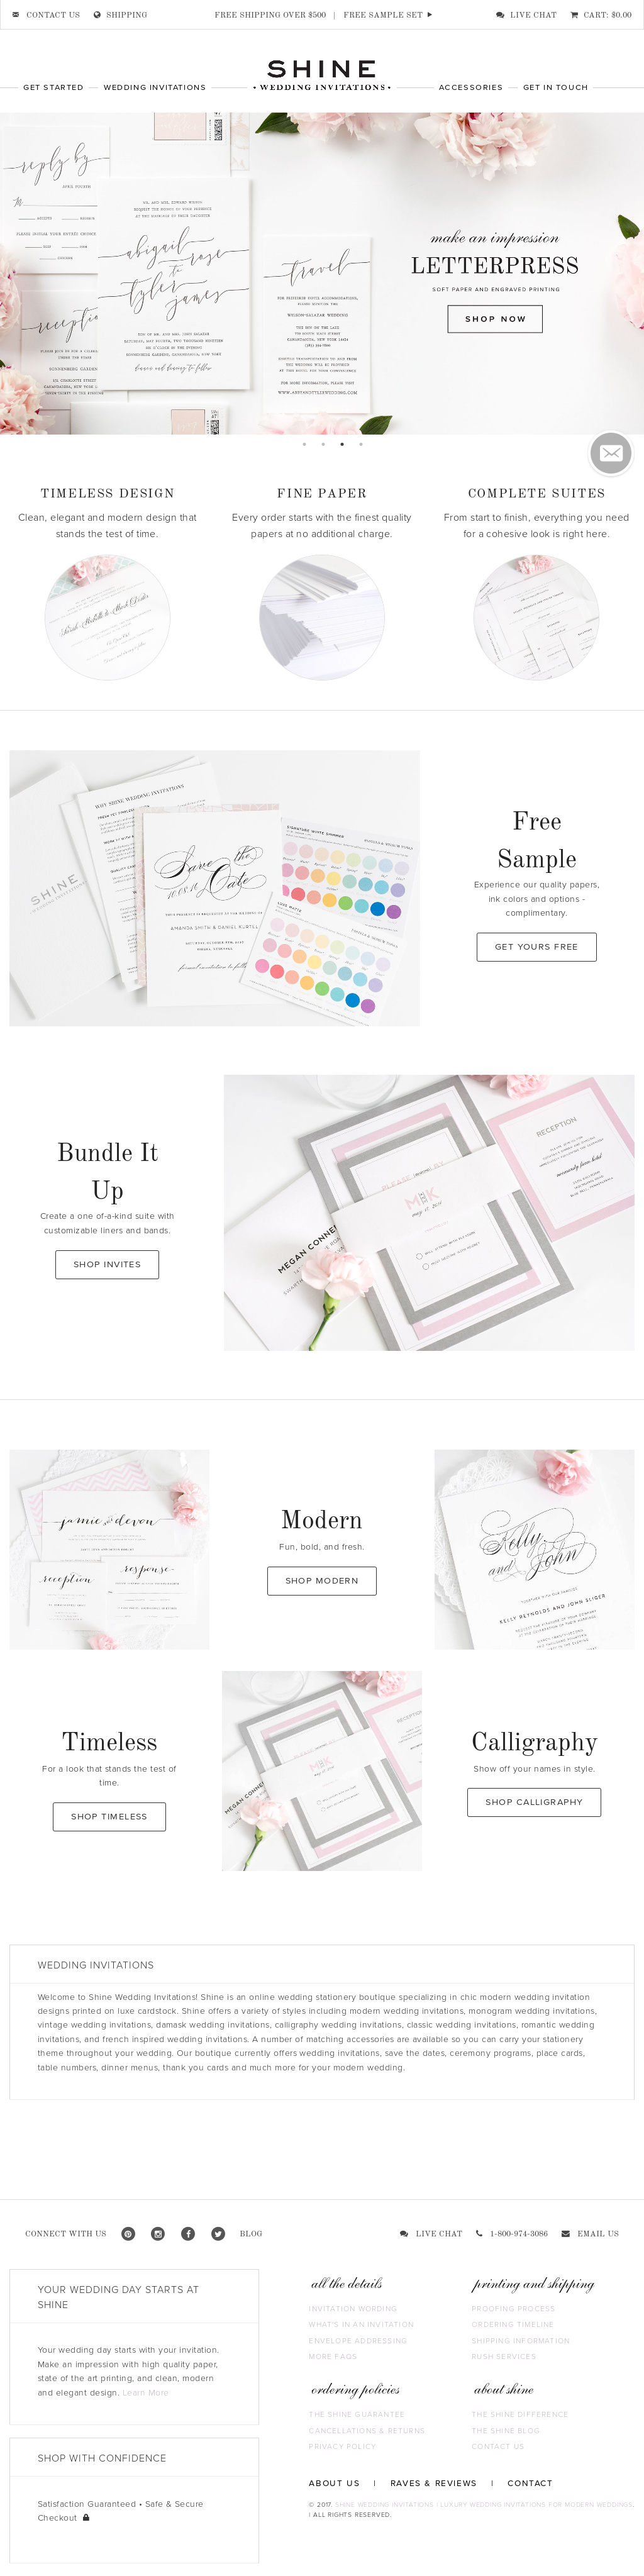 Shine Wedding Invitations Competitors, Revenue and Employees - Owler ...